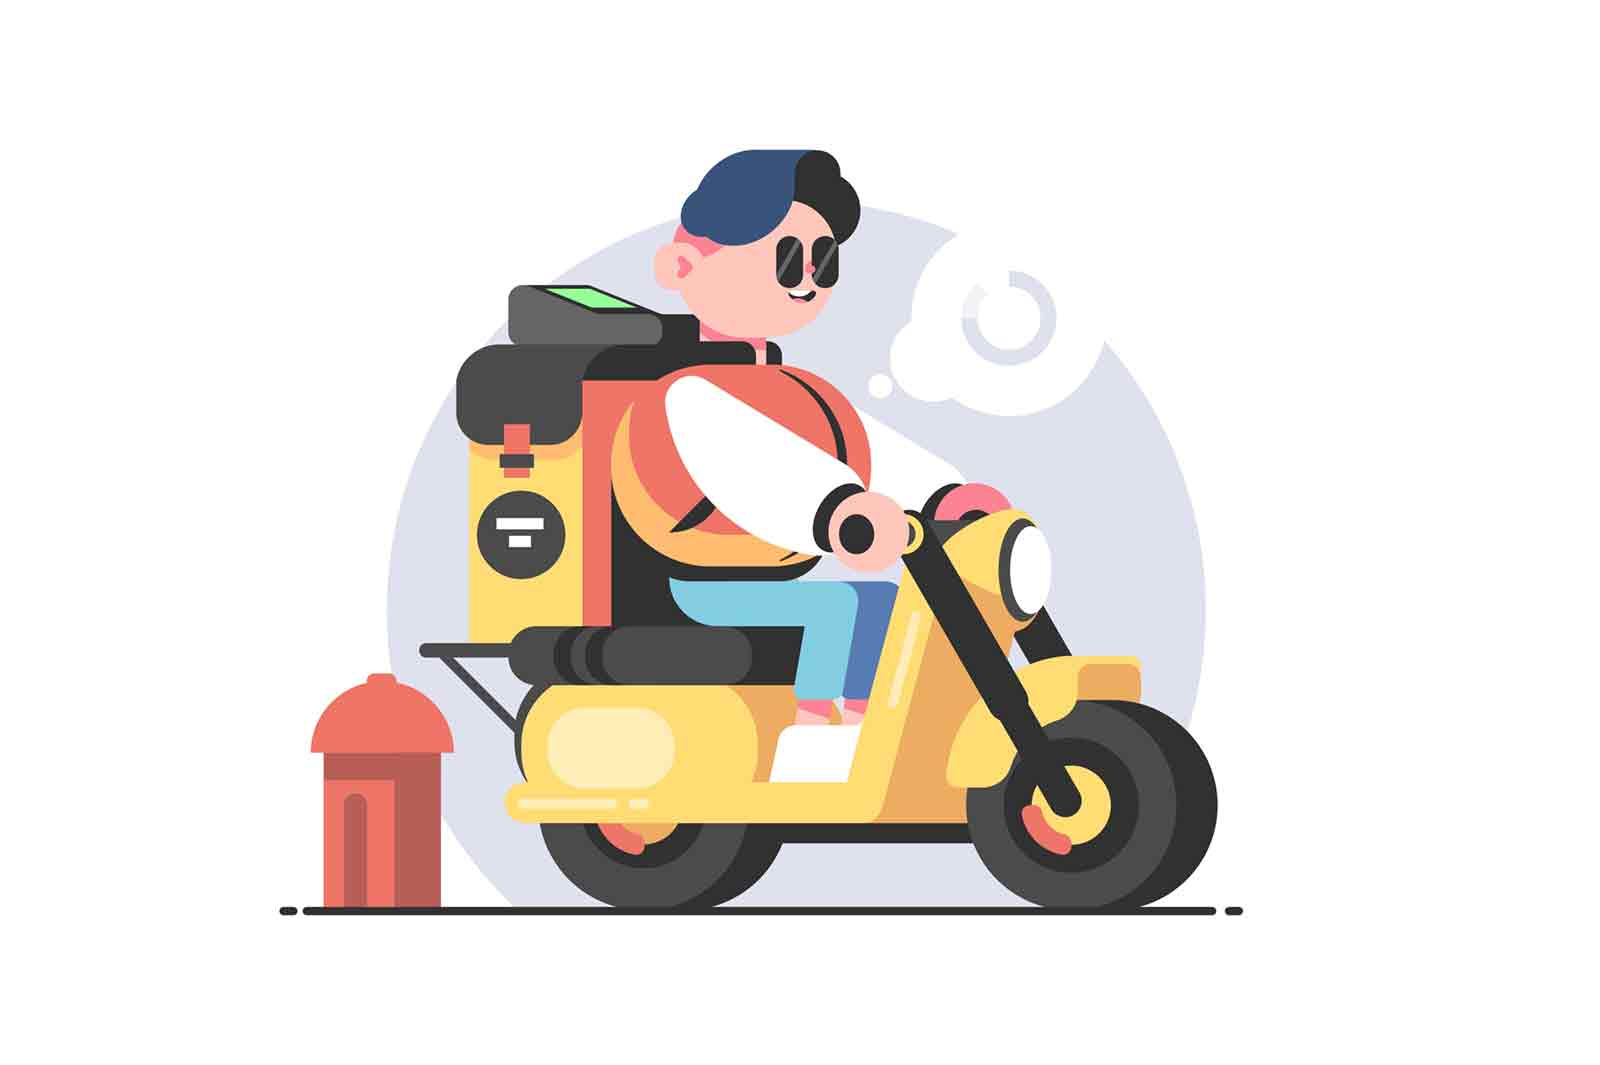 Food delivery man on scooter vector illustration. Delivery worker with backpack full of products flat style. Delivery service and food concept. Isolated on white background